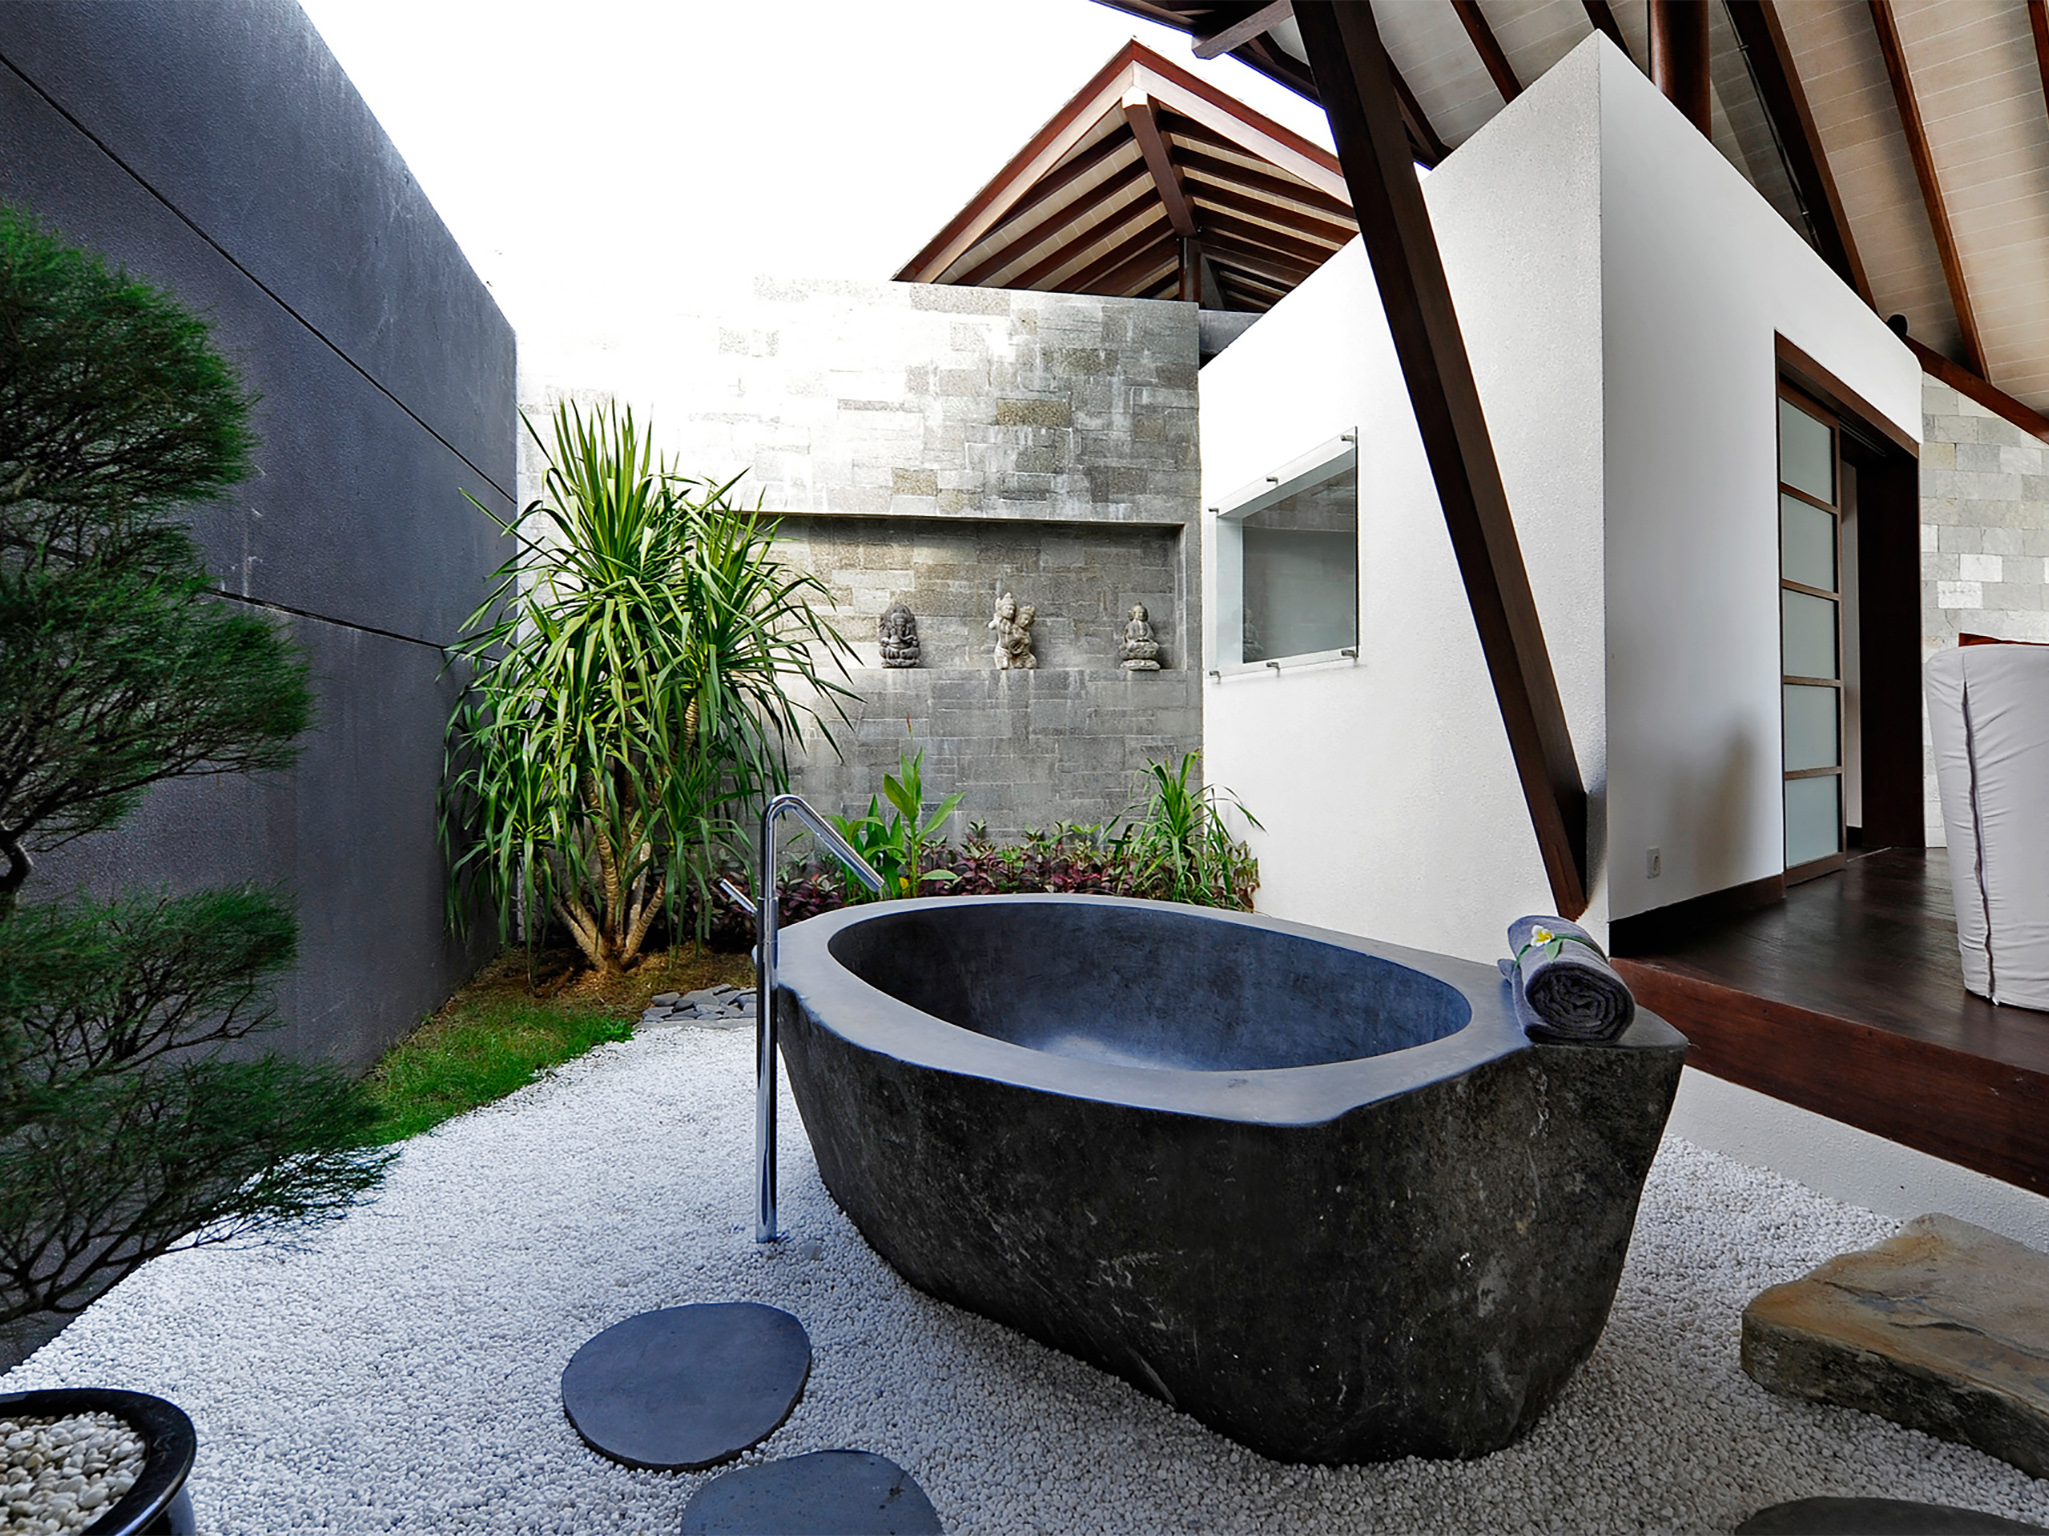 The Layar 1BR - Poolside - The Layar - Villa 2B (1BR), Seminyak The ...